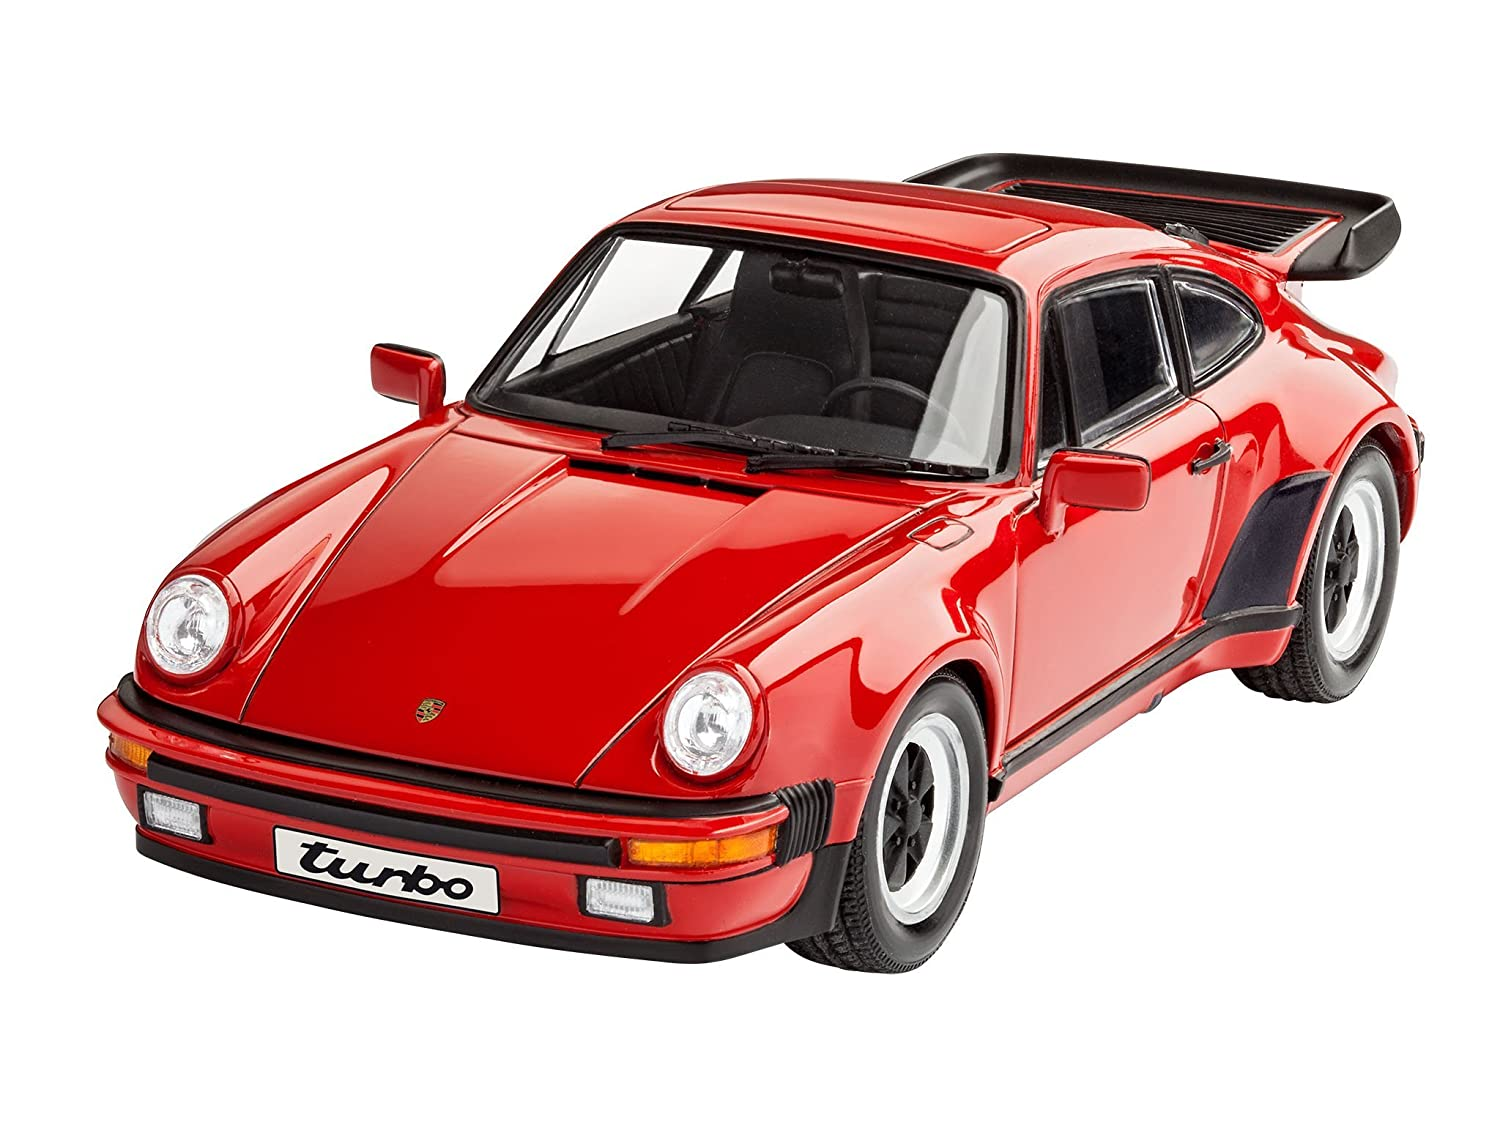 Revell Maqueta Porsche 911 Turbo, Kit Modelo, Escala 1:24 (07179), Color Rojo 18,0 cm de Largo (: Amazon.es: Juguetes y juegos